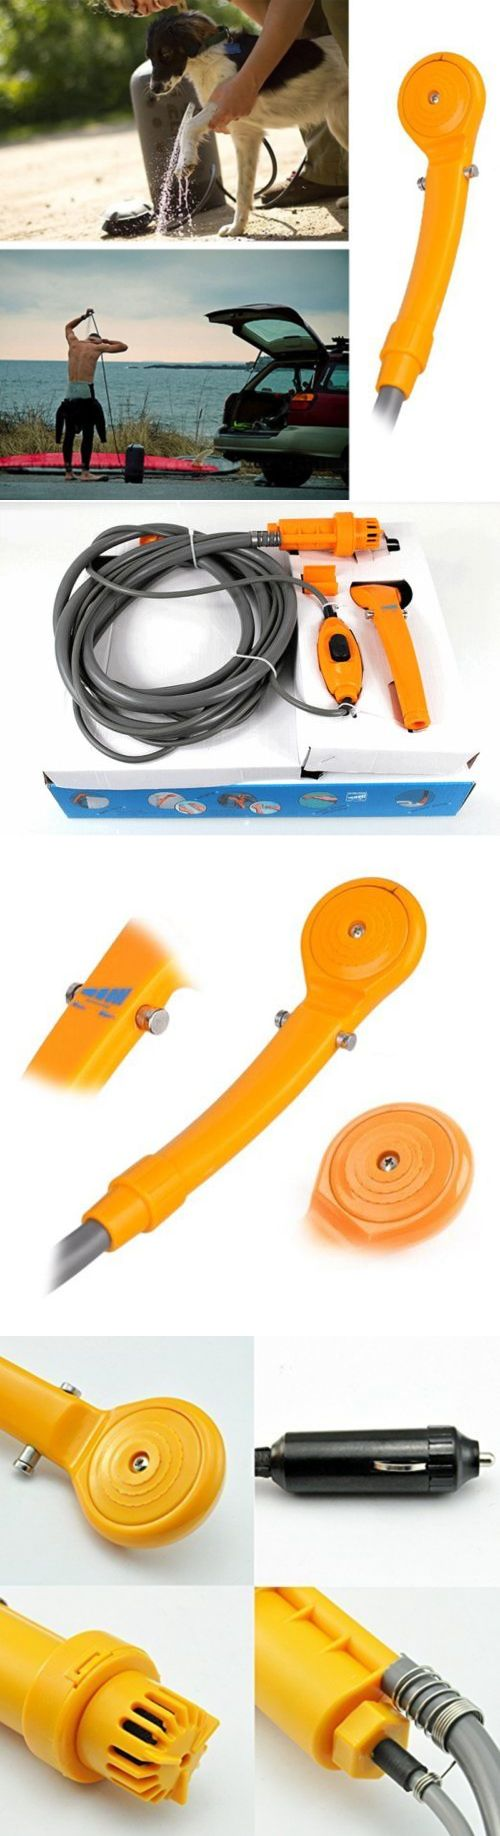 Portable Showers and Accessories 181396: Outdoor 12V Portable Pressure Washer Travel Automobile Shower Set -> BUY IT NOW ONLY: $33.11 on eBay!